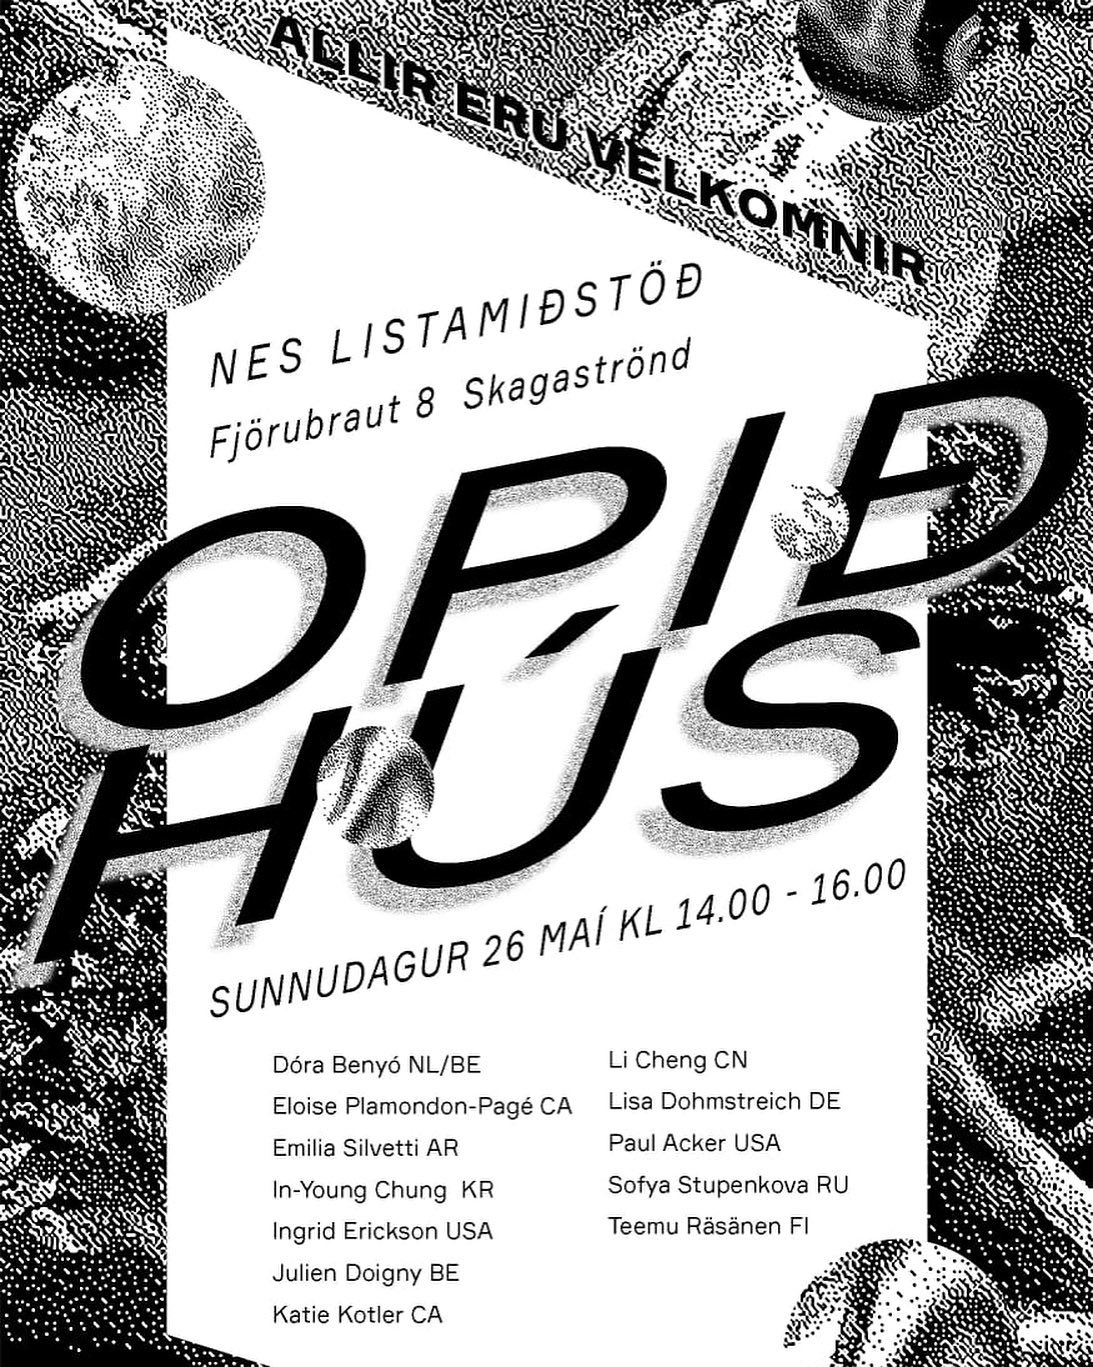 I've been living in Skagaströnd, Iceland throughout May as part of a residency with NES. We are having an Open Studio this coming Saturday, May 26h. I will be showing animations and some songs that I have made during my time here. Come on by if you're nearby!